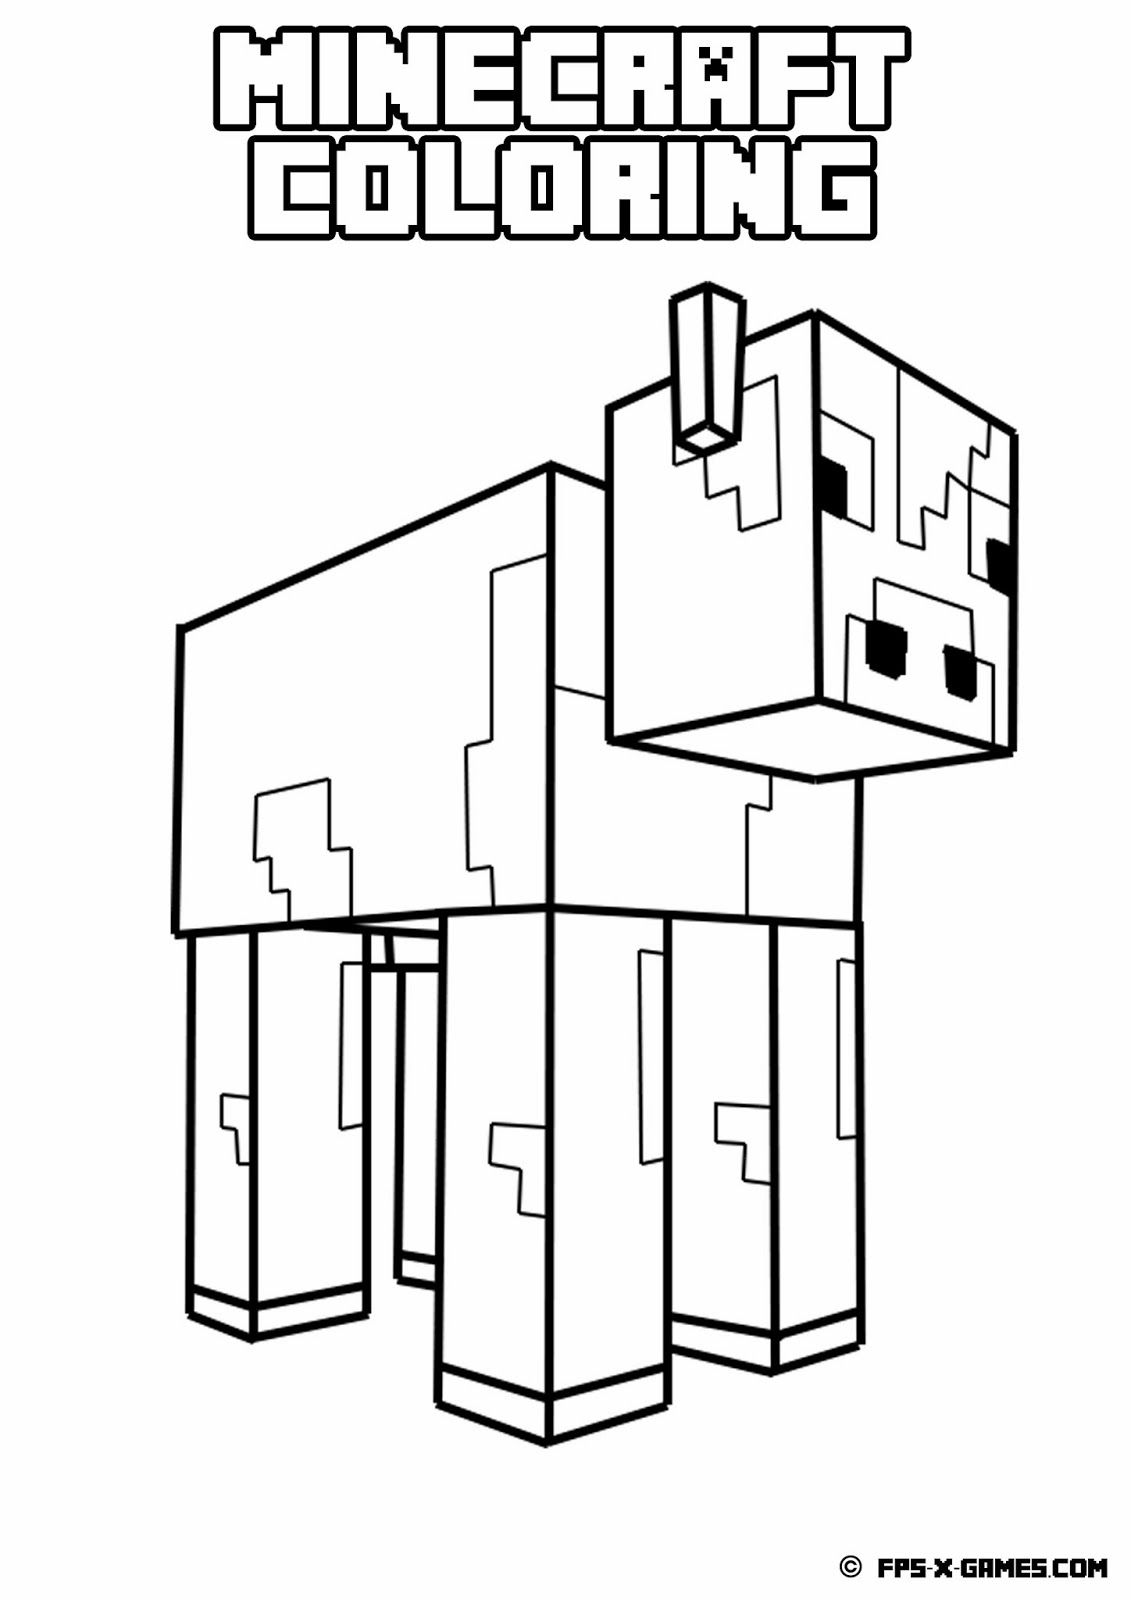 easy minecraft coloring pages minecraft drawing pictures at getdrawings free download easy minecraft pages coloring